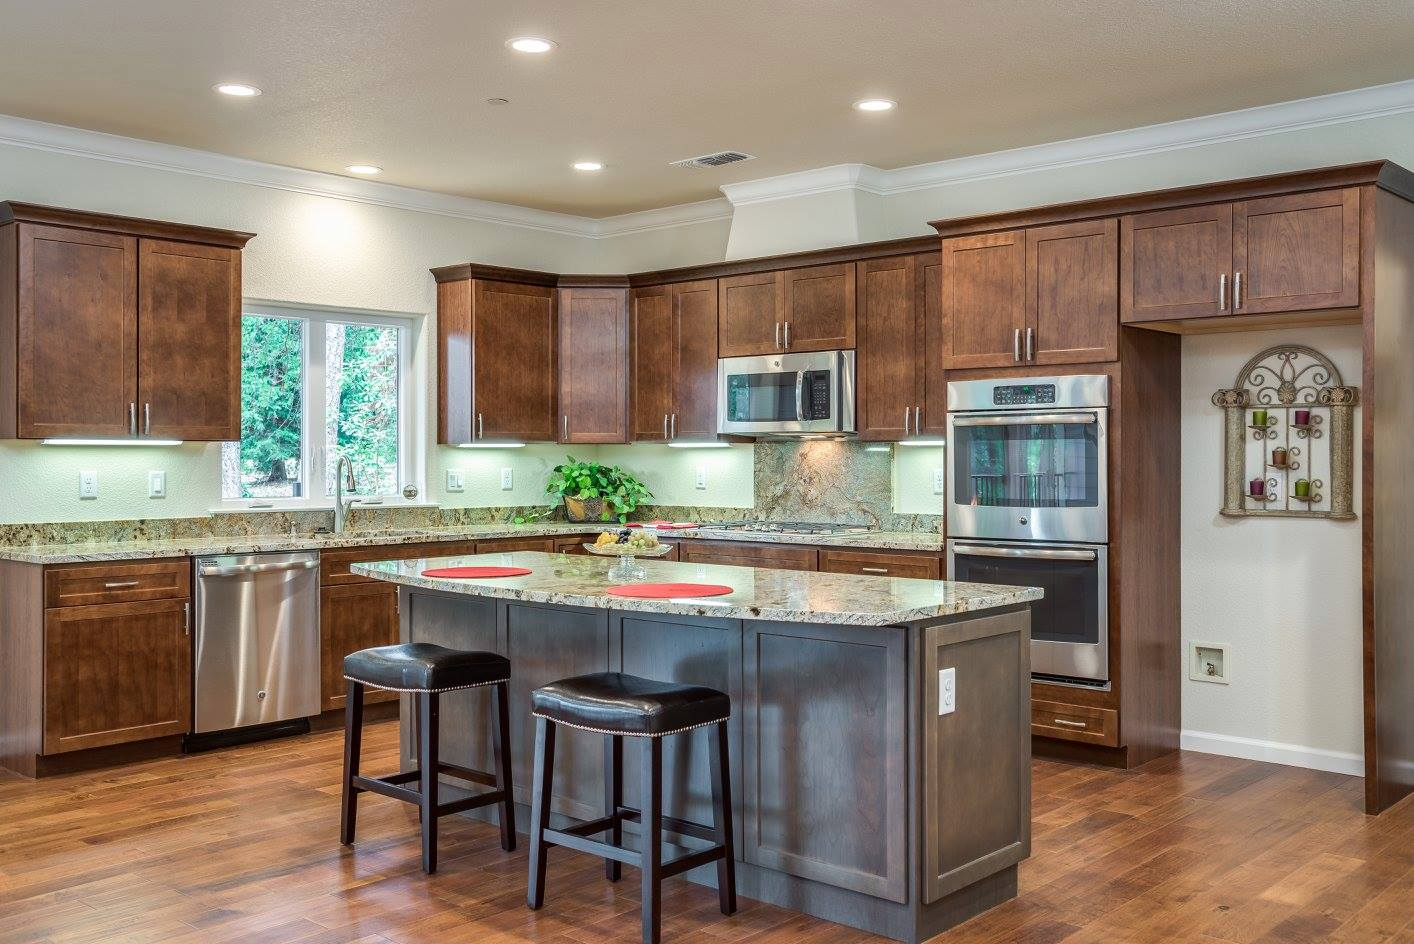 Kitchen with island, brown cabinets and marble counters